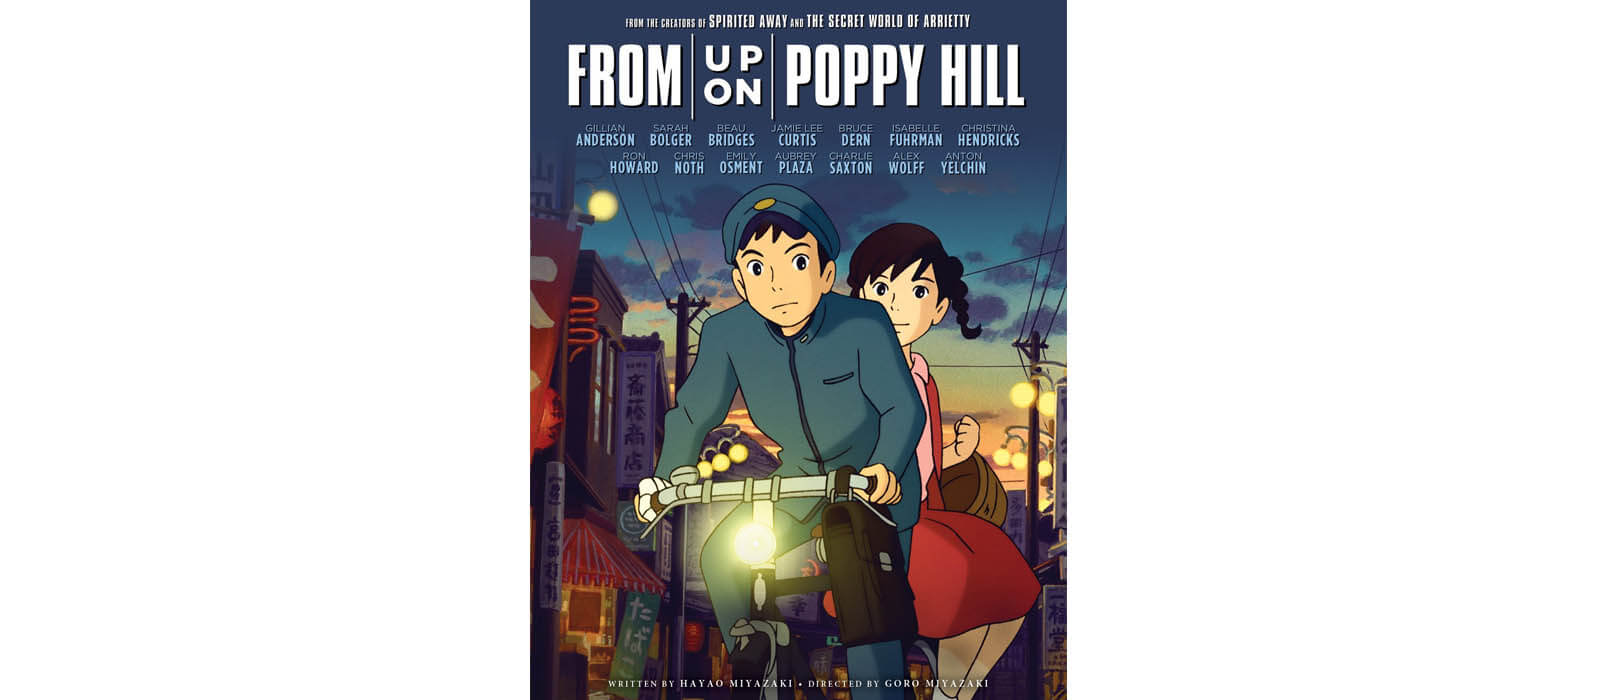 From Up On The Poppy Hill